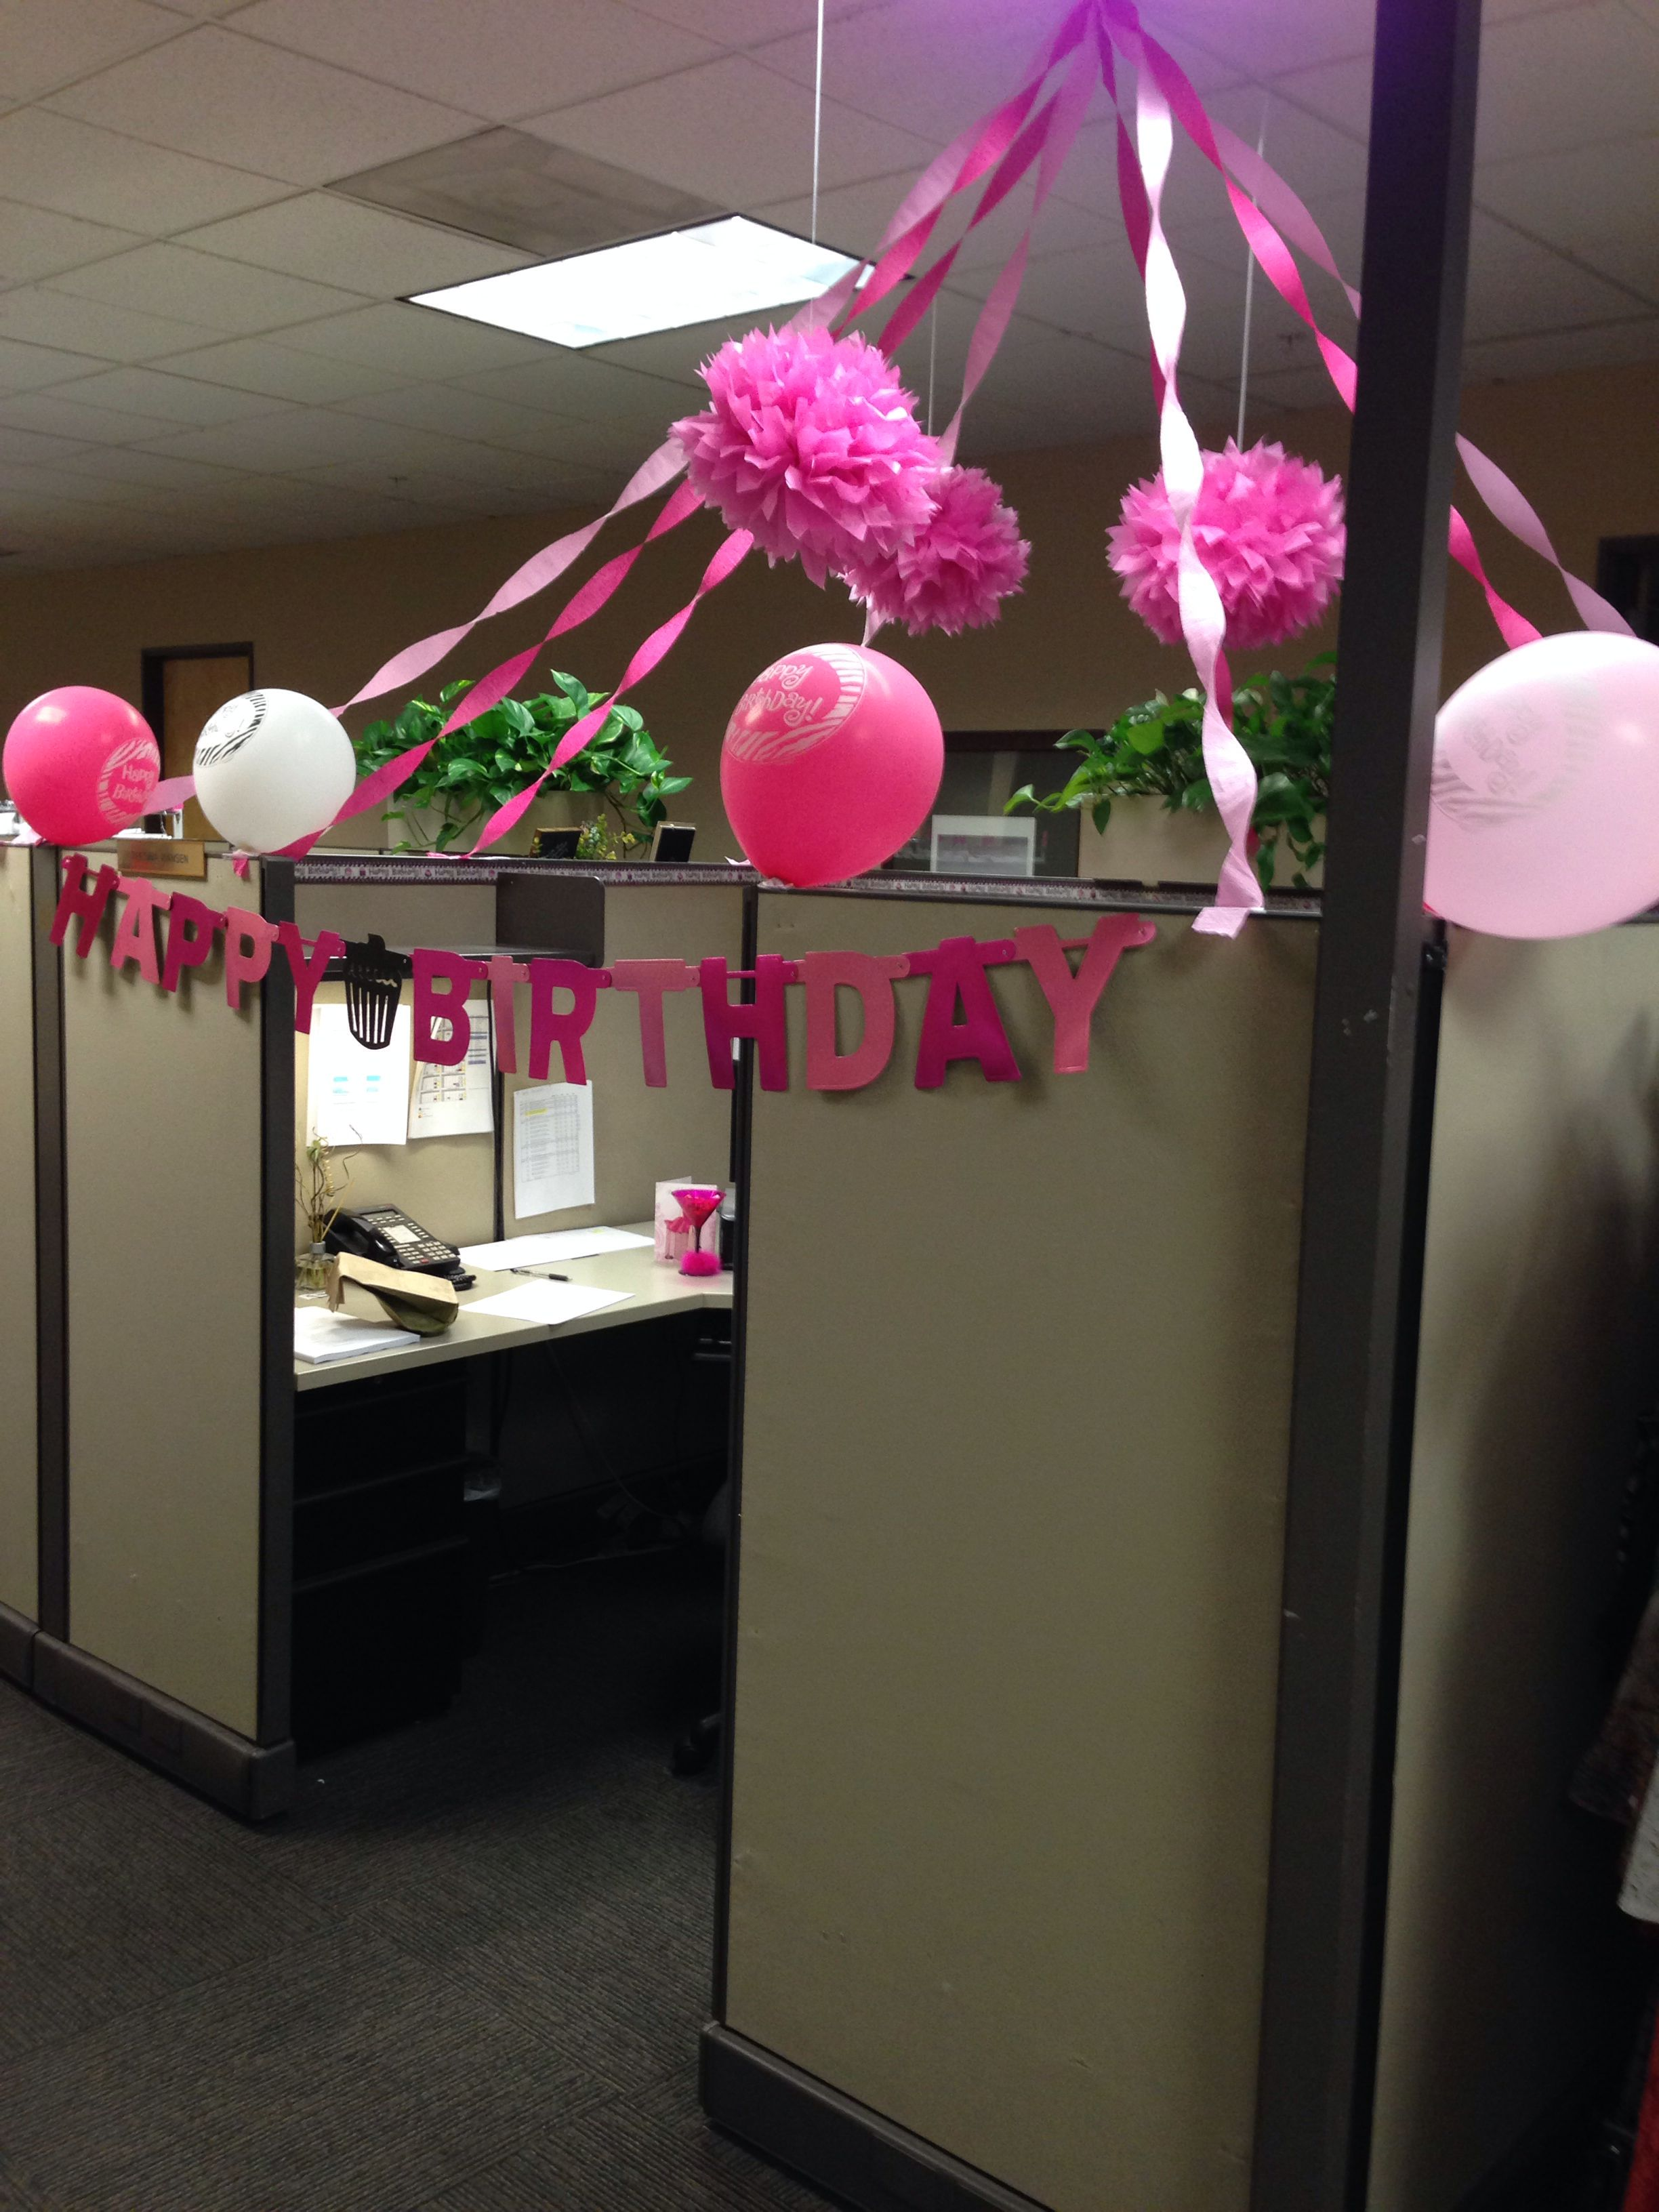 Cubicle Decorations For Birthday My Birthday Cubicle Pinteres